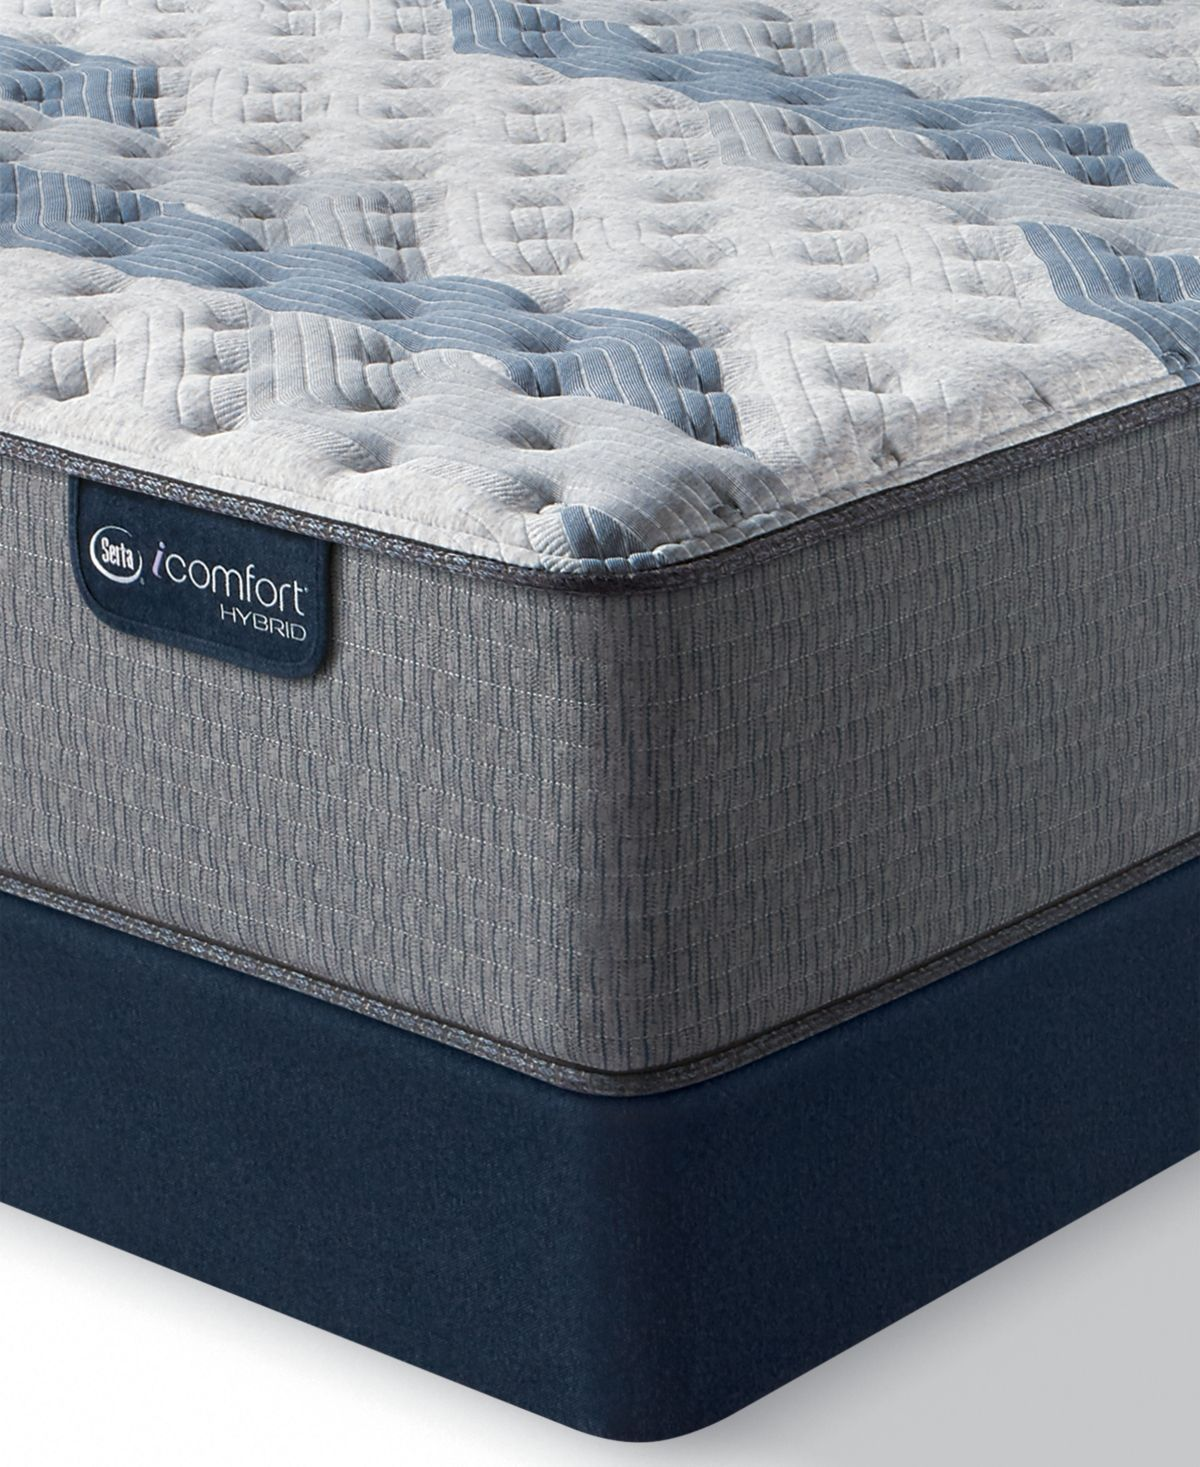 Serta Icomfort By Blue Fusion 500 14 Hybrid Extra Firm Mattress